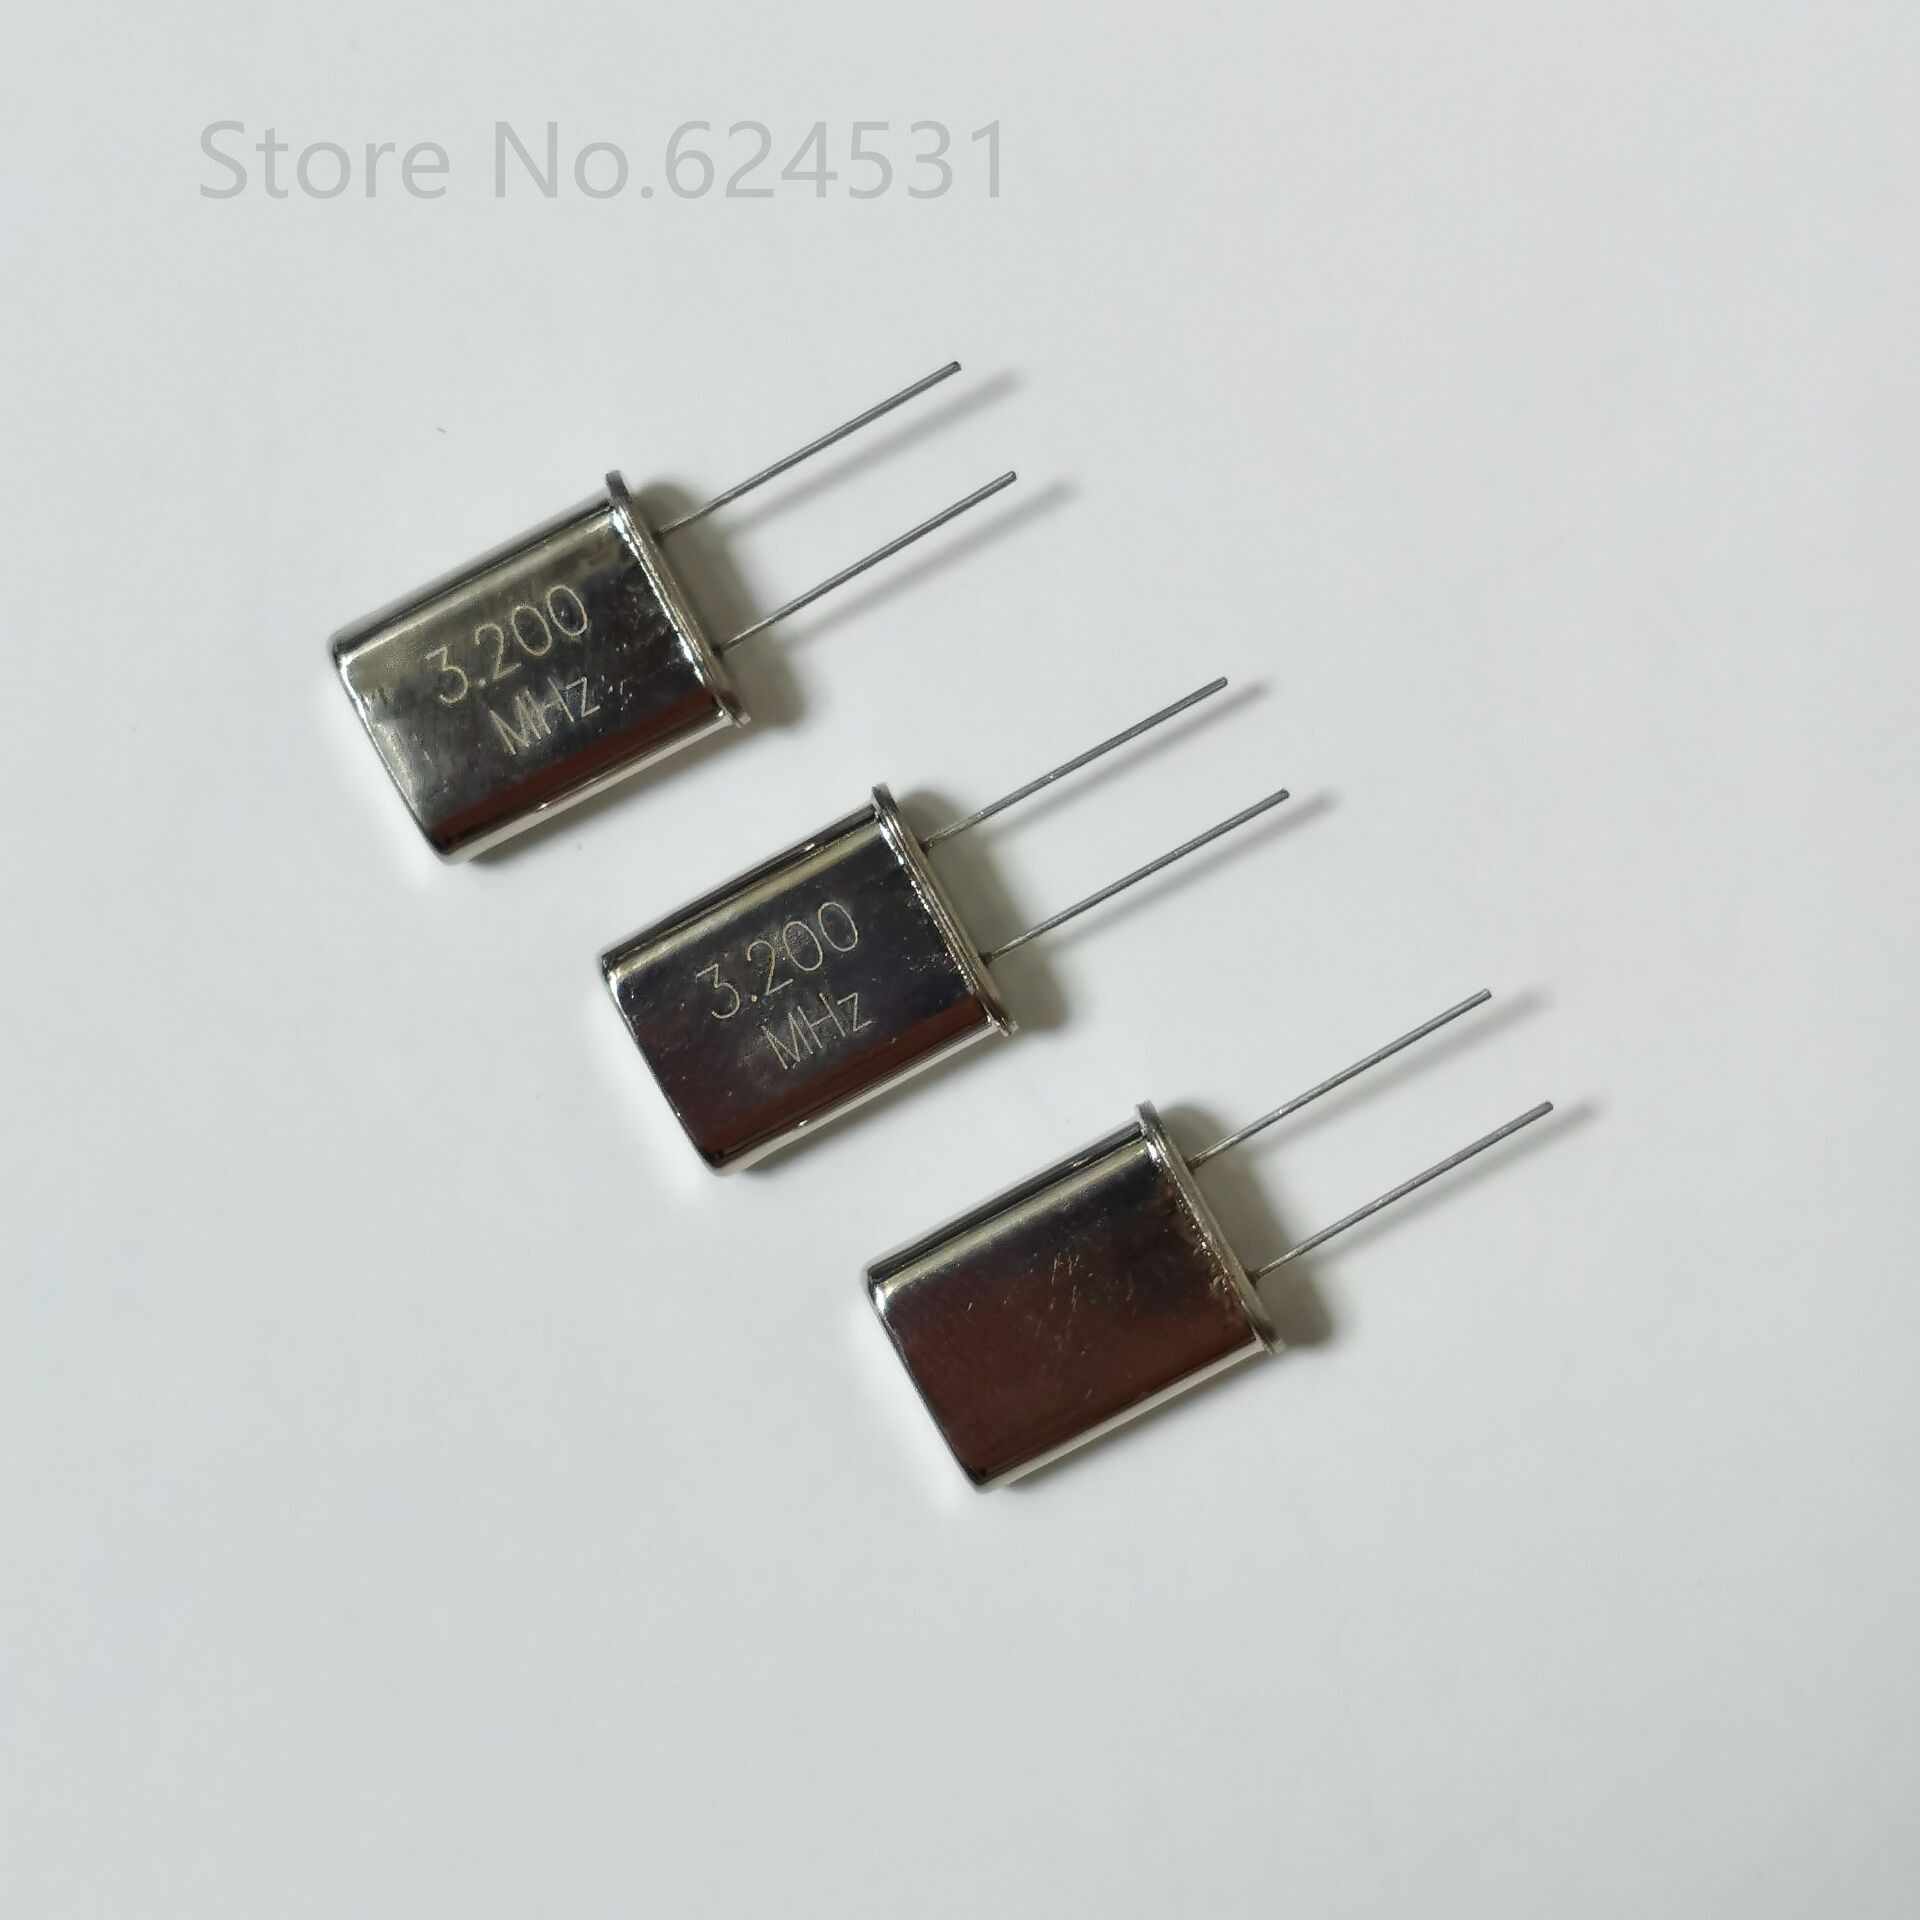 10pcs Quartz Crystal Resonator In-Line Passive Crystal Oscillator HC-49U 3.2MHZ 3.2M 3.200MHZ Resonator